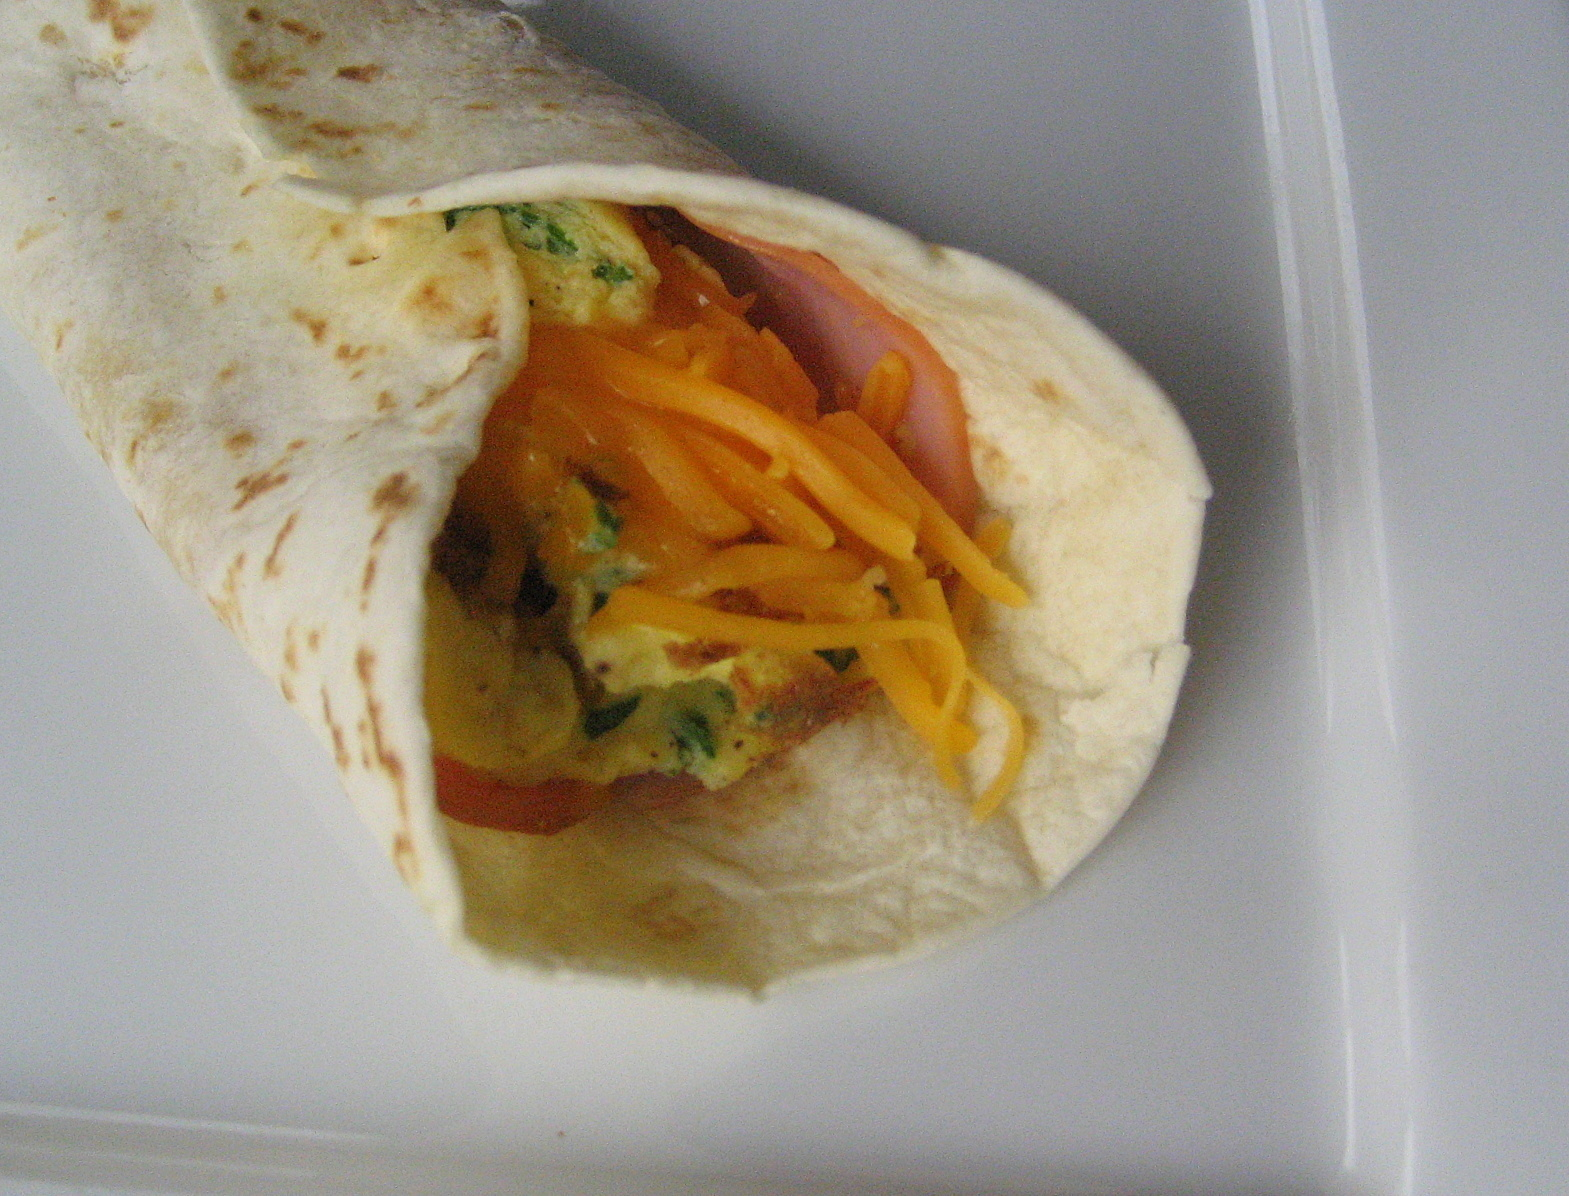 Breakfast Series: Breakfast Burrito